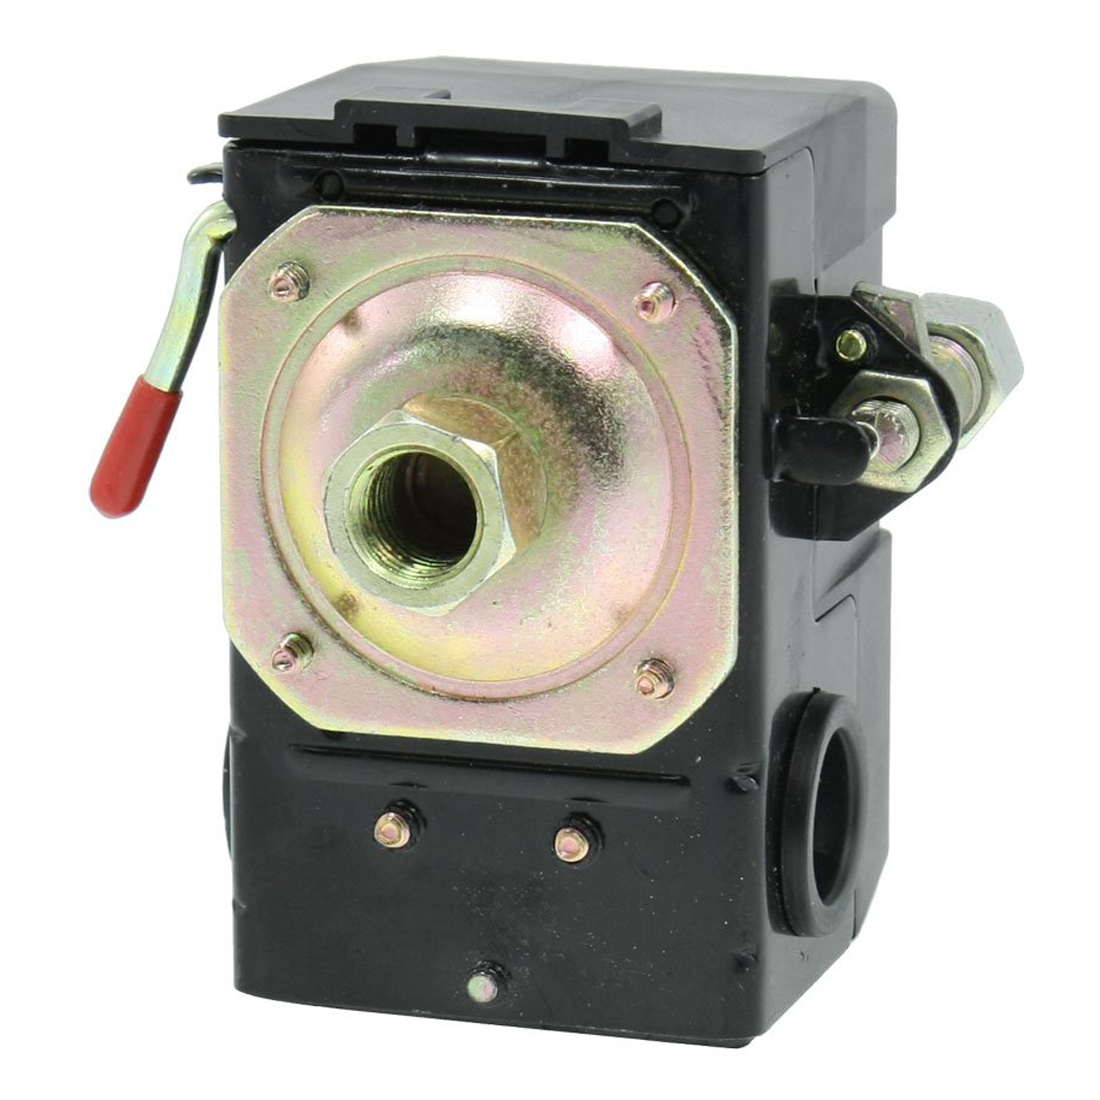 DHDL-80-115PSI 1/4 NPT 1-Port Air Compressor Pressure Switch Control Valve vertical type replacement part 1 port spdt air compressor pump pressure on off knob switch control valve 80 115 psi ac220 240v